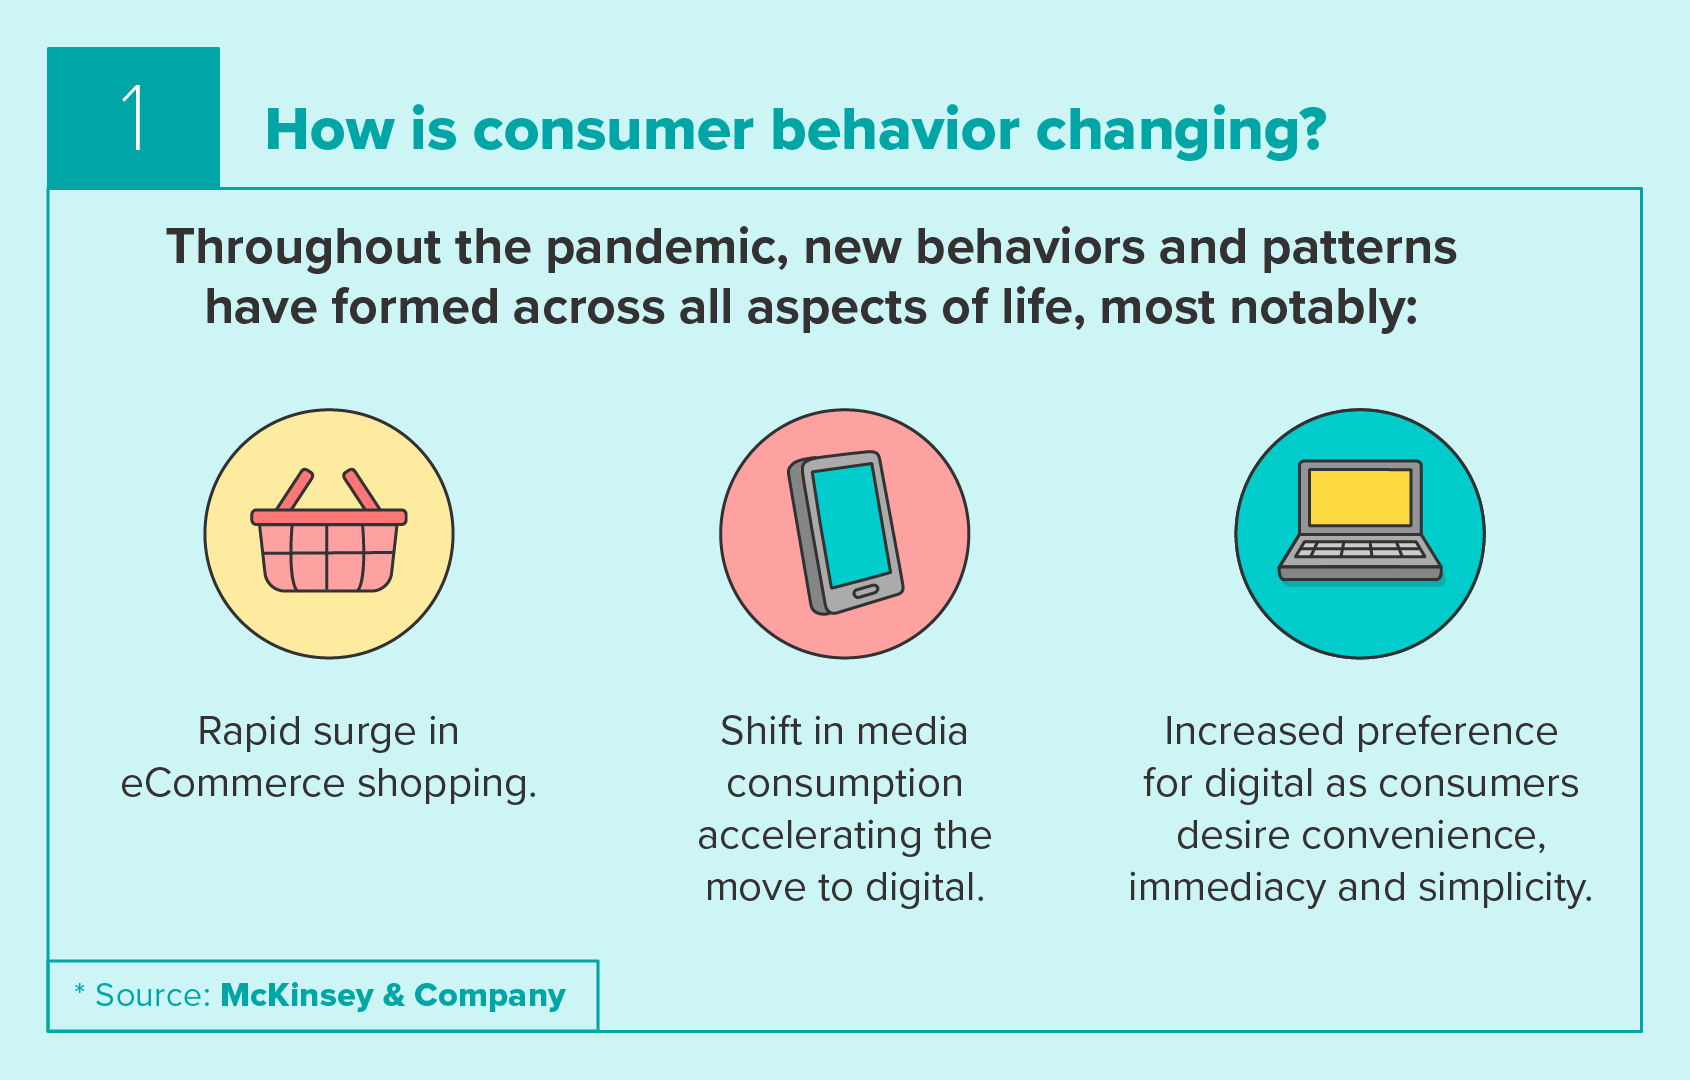 How is consumer behavior changing?